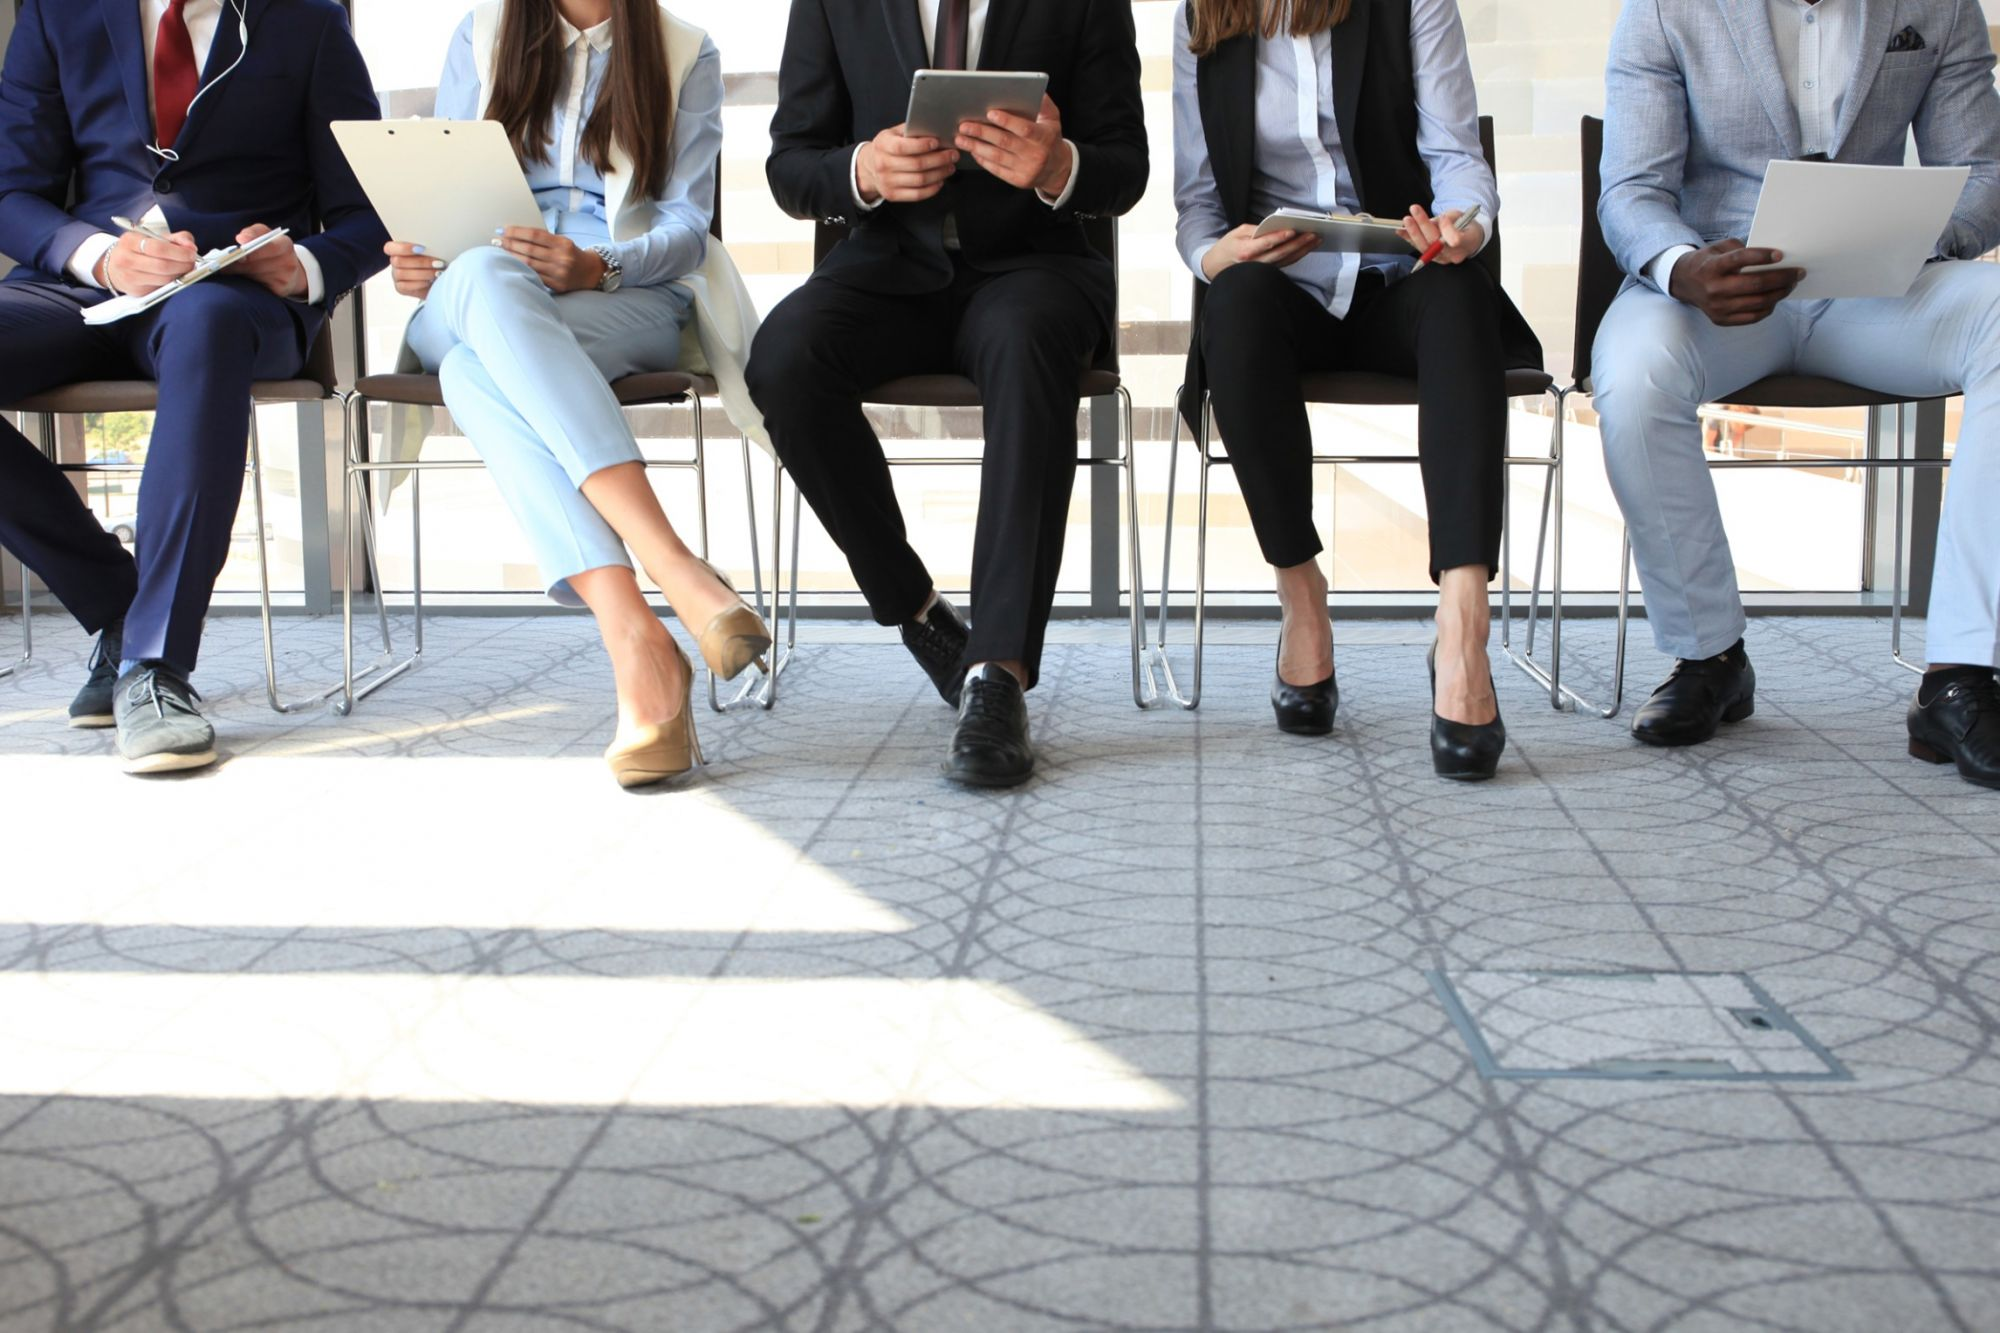 Here's How to Stay One Big Step Ahead of Your Changing Talent Pool